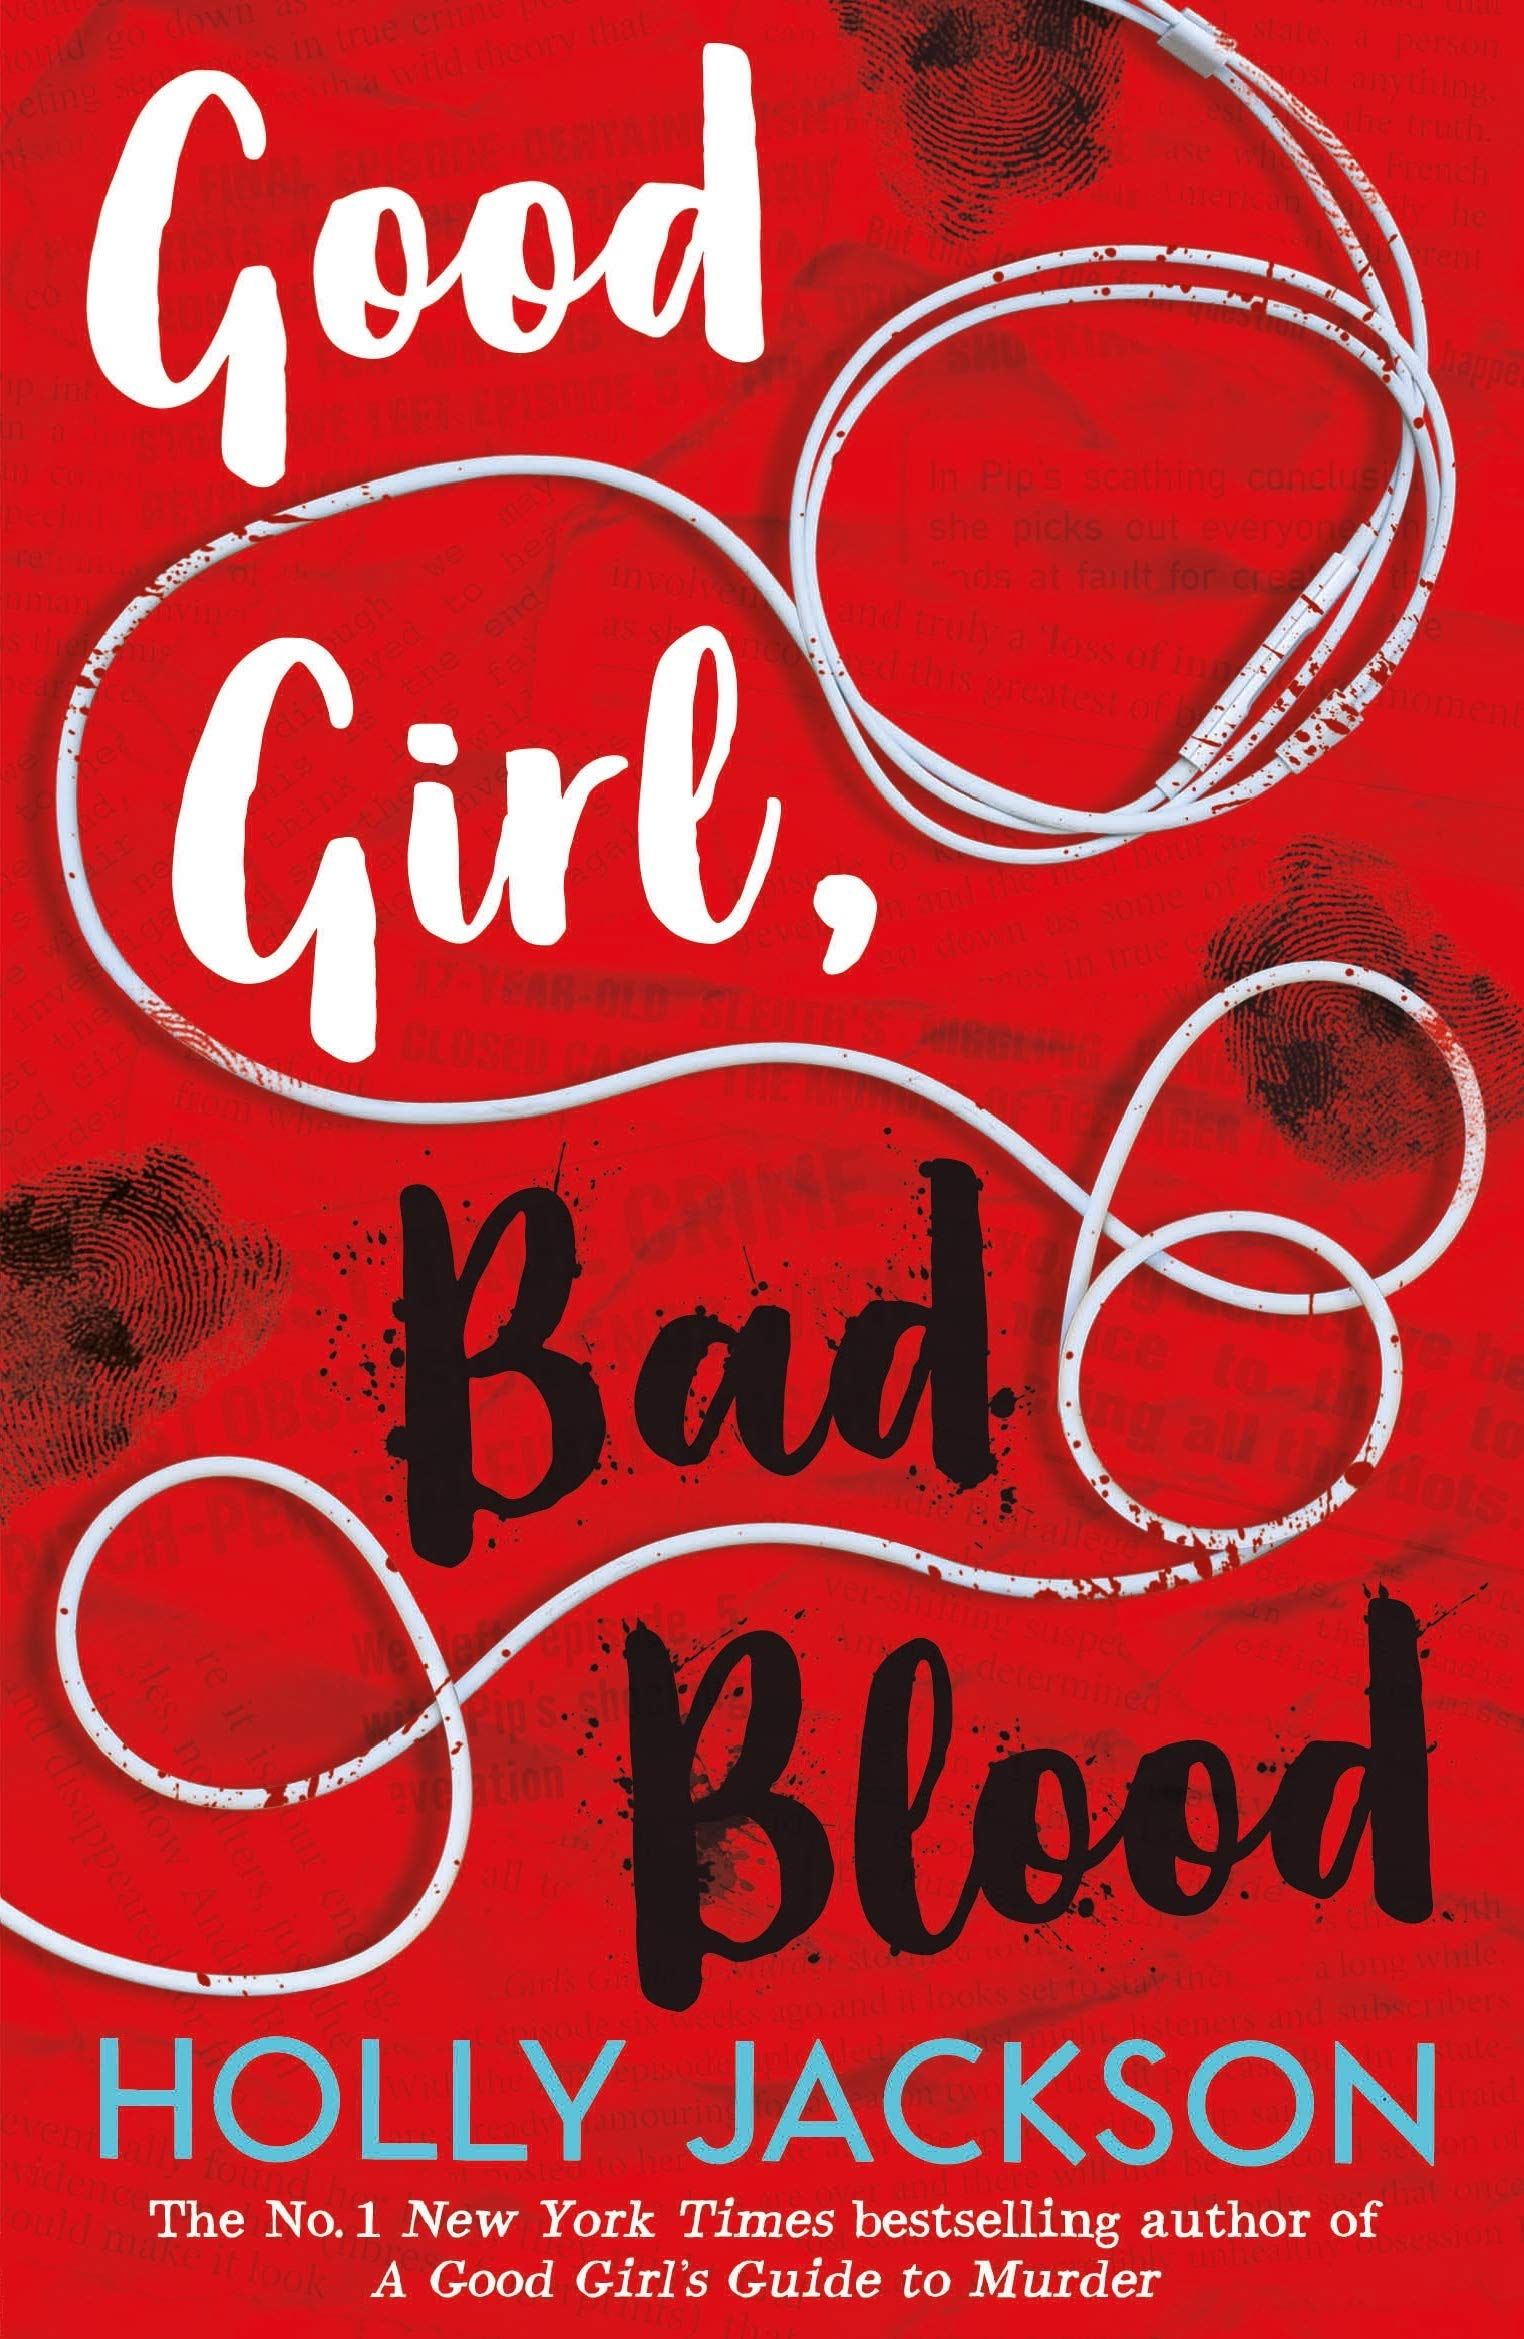 Good Girl, Bad Blood – The Sunday Times bestseller and sequel to A Good Girls Guide to Murder: Amazon.es: Jackson, Holly: Libros en idiomas extranjeros